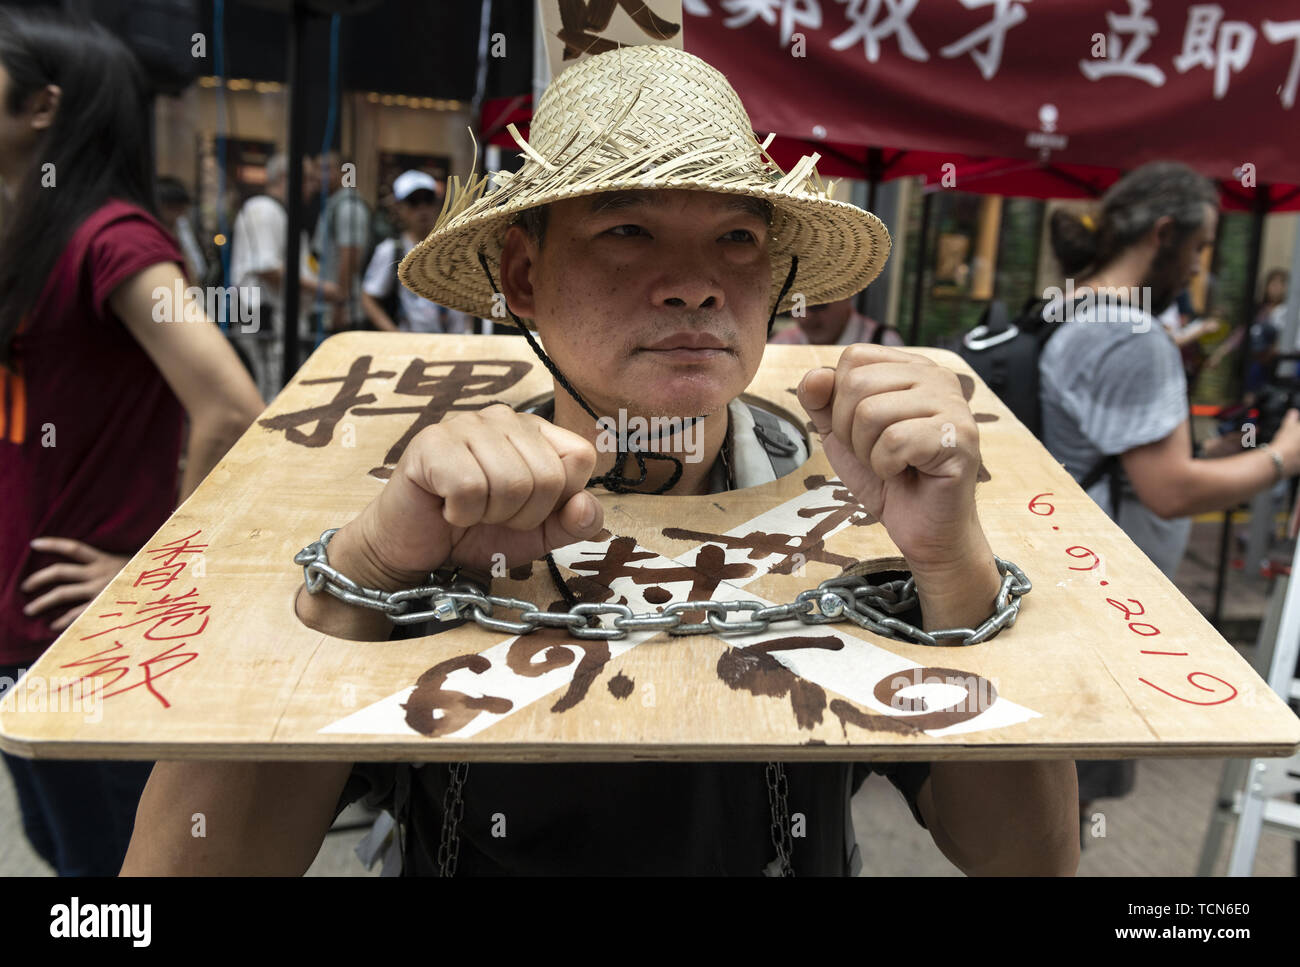 Hong Kong, Hong Kong SAR, CHINA. 9th June, 2019. A protester in chains.Hong Kong sees one of the largest protests ever as people come out in force to protest the proposed extradition bill. The bill would allow fro the removal of people to China to face trial. People feel this clearly violates the One Country Two Systems government that was put in place following the handover to the motherland. Credit: Jayne Russell/ZUMA Wire/Alamy Live News - Stock Image